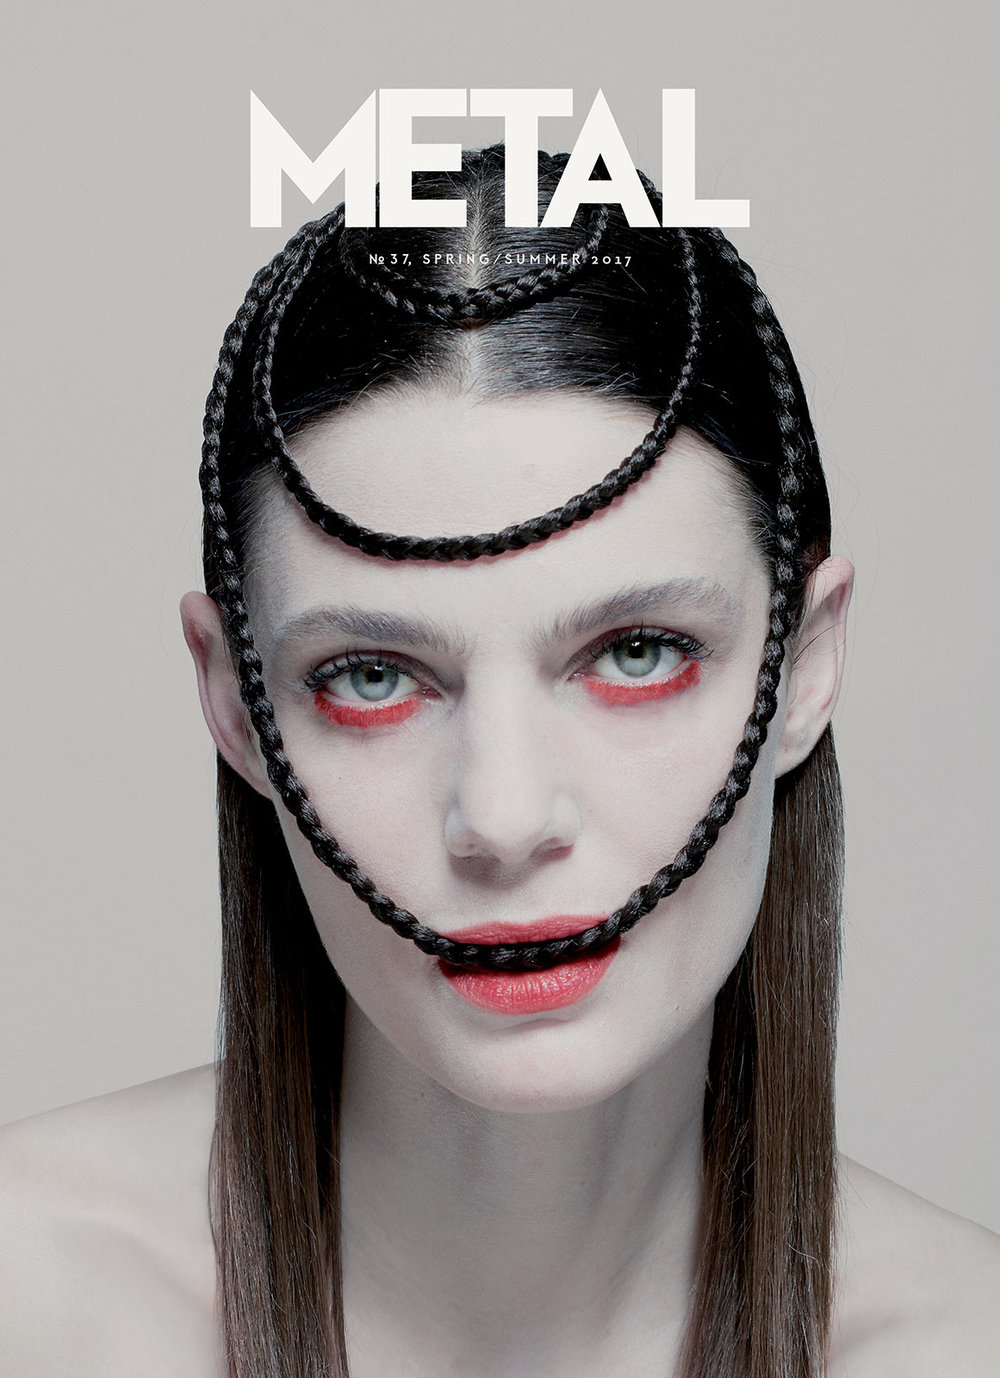 COVER 8 - Marina Pérez photographed by Biel Capllonch.